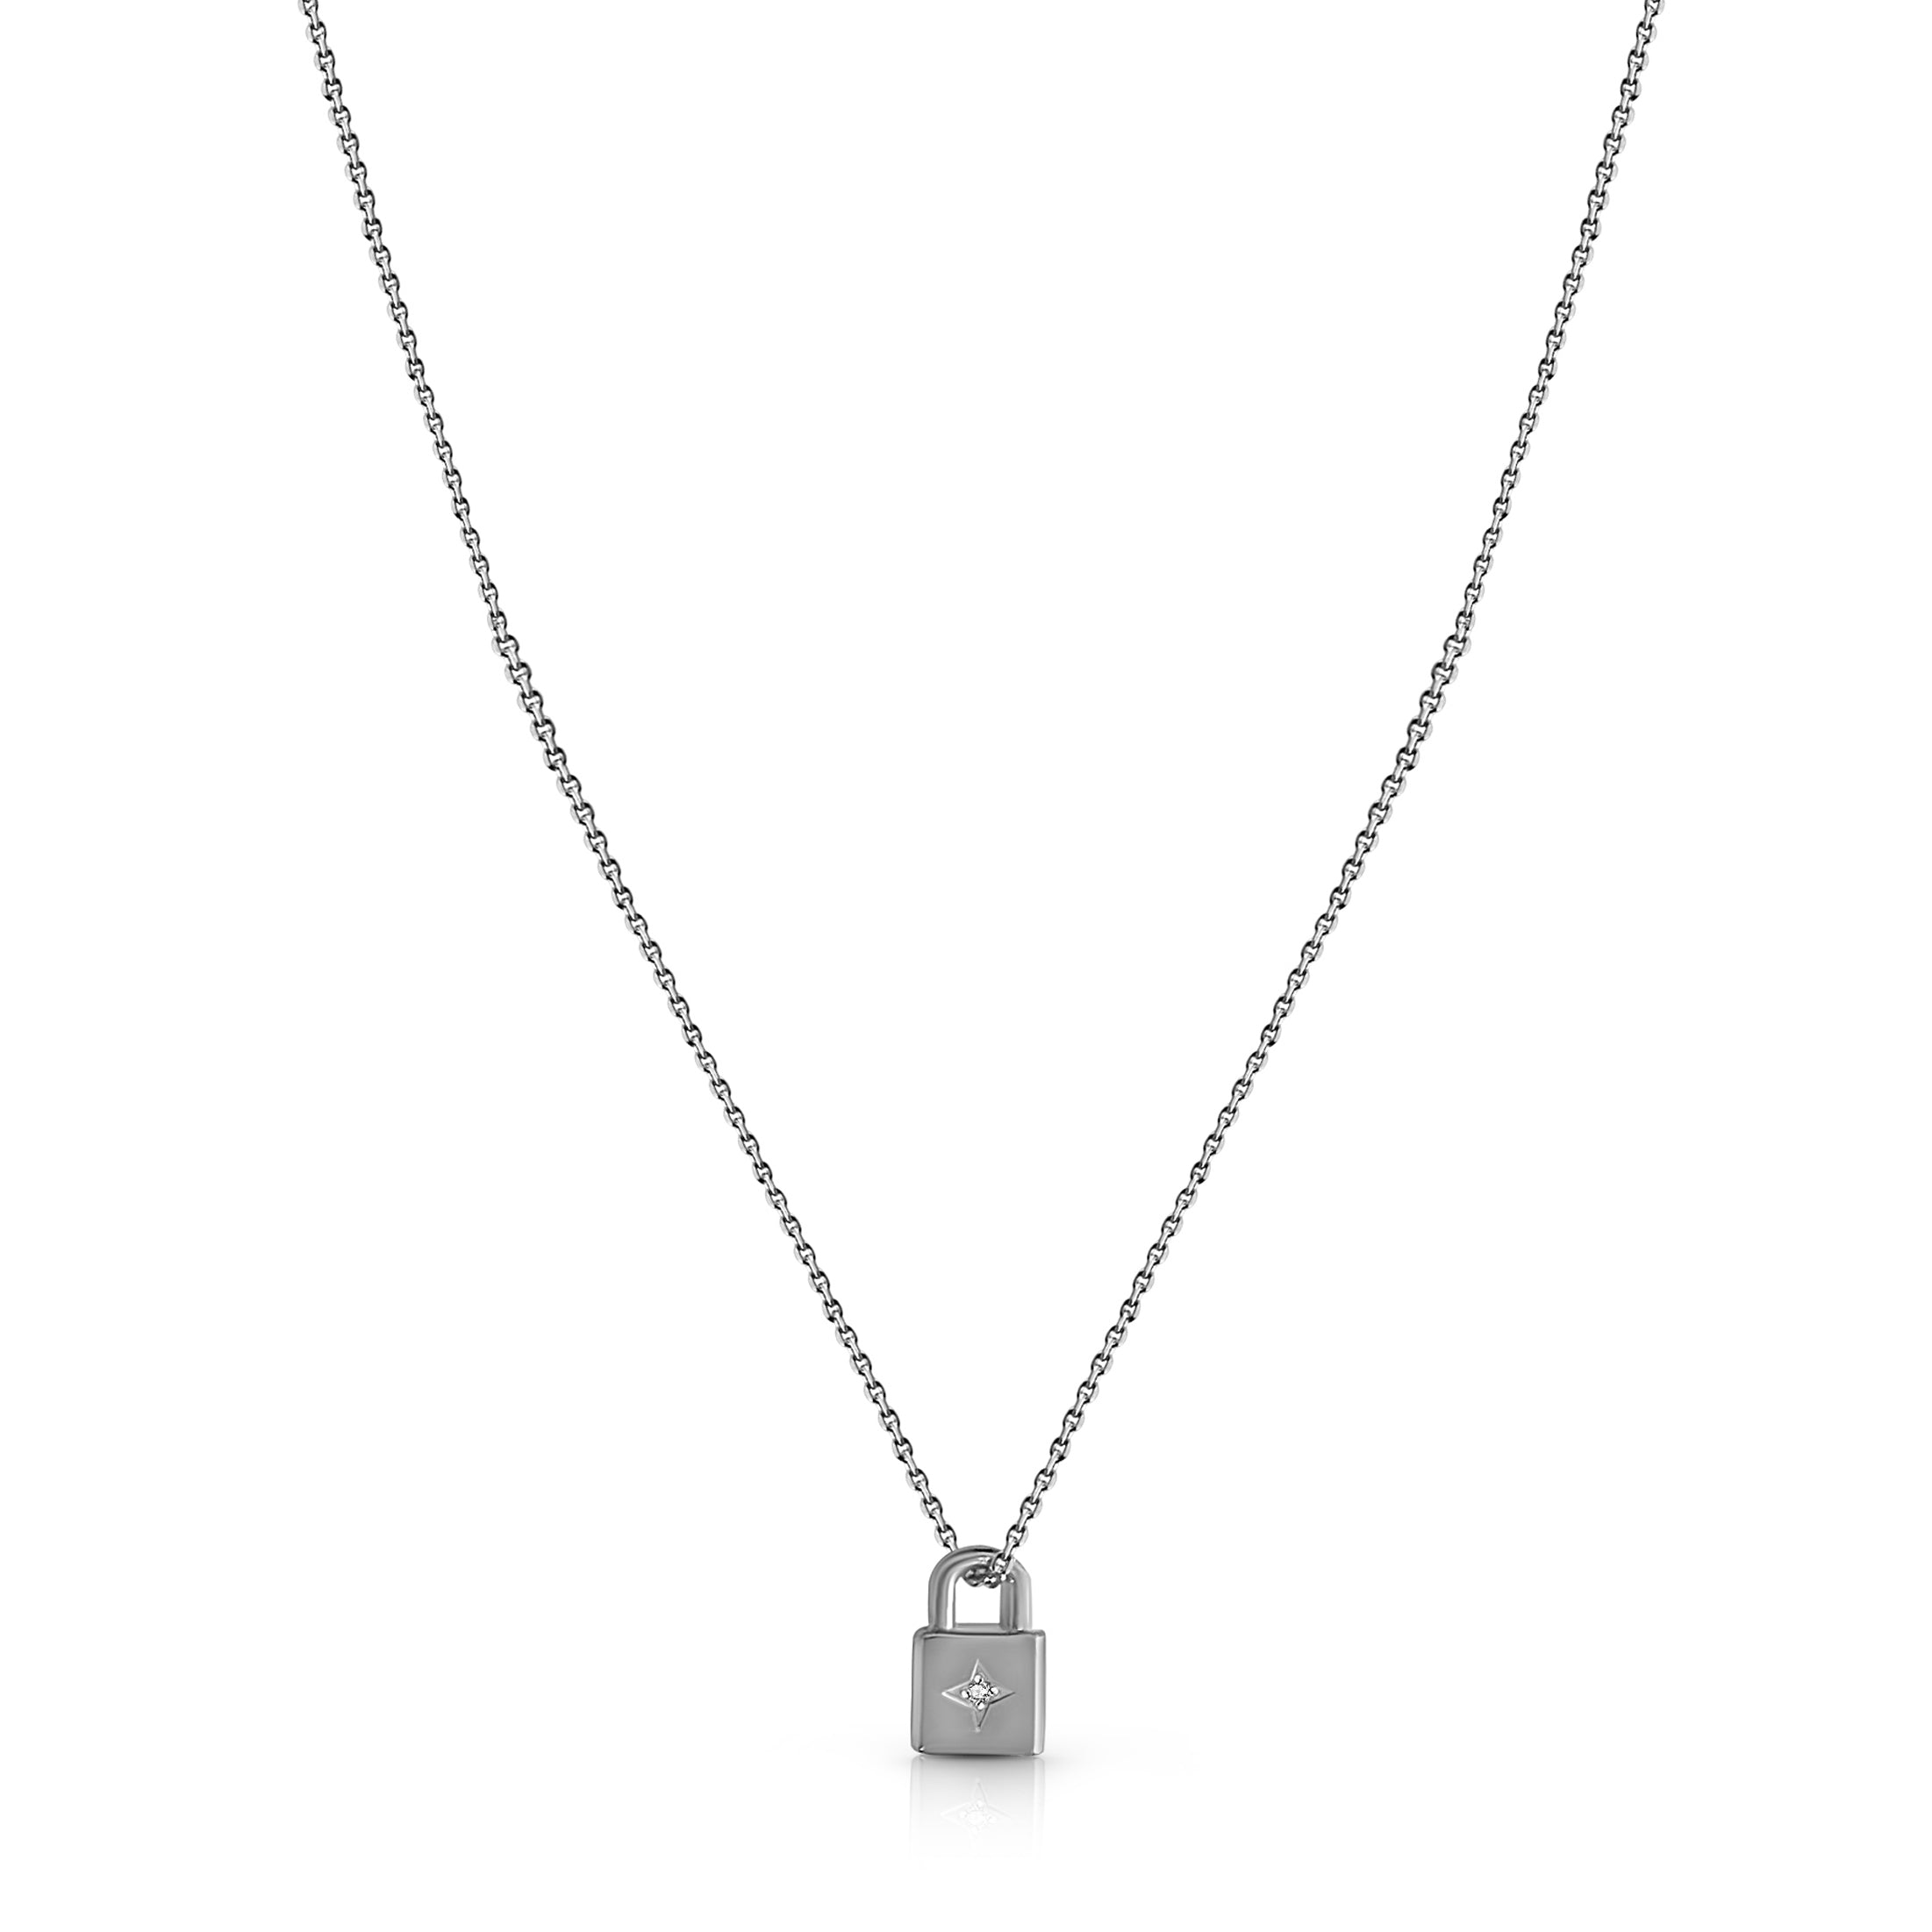 Lovers Lock, Padlock Necklace - Silver (Rhodium Plated)